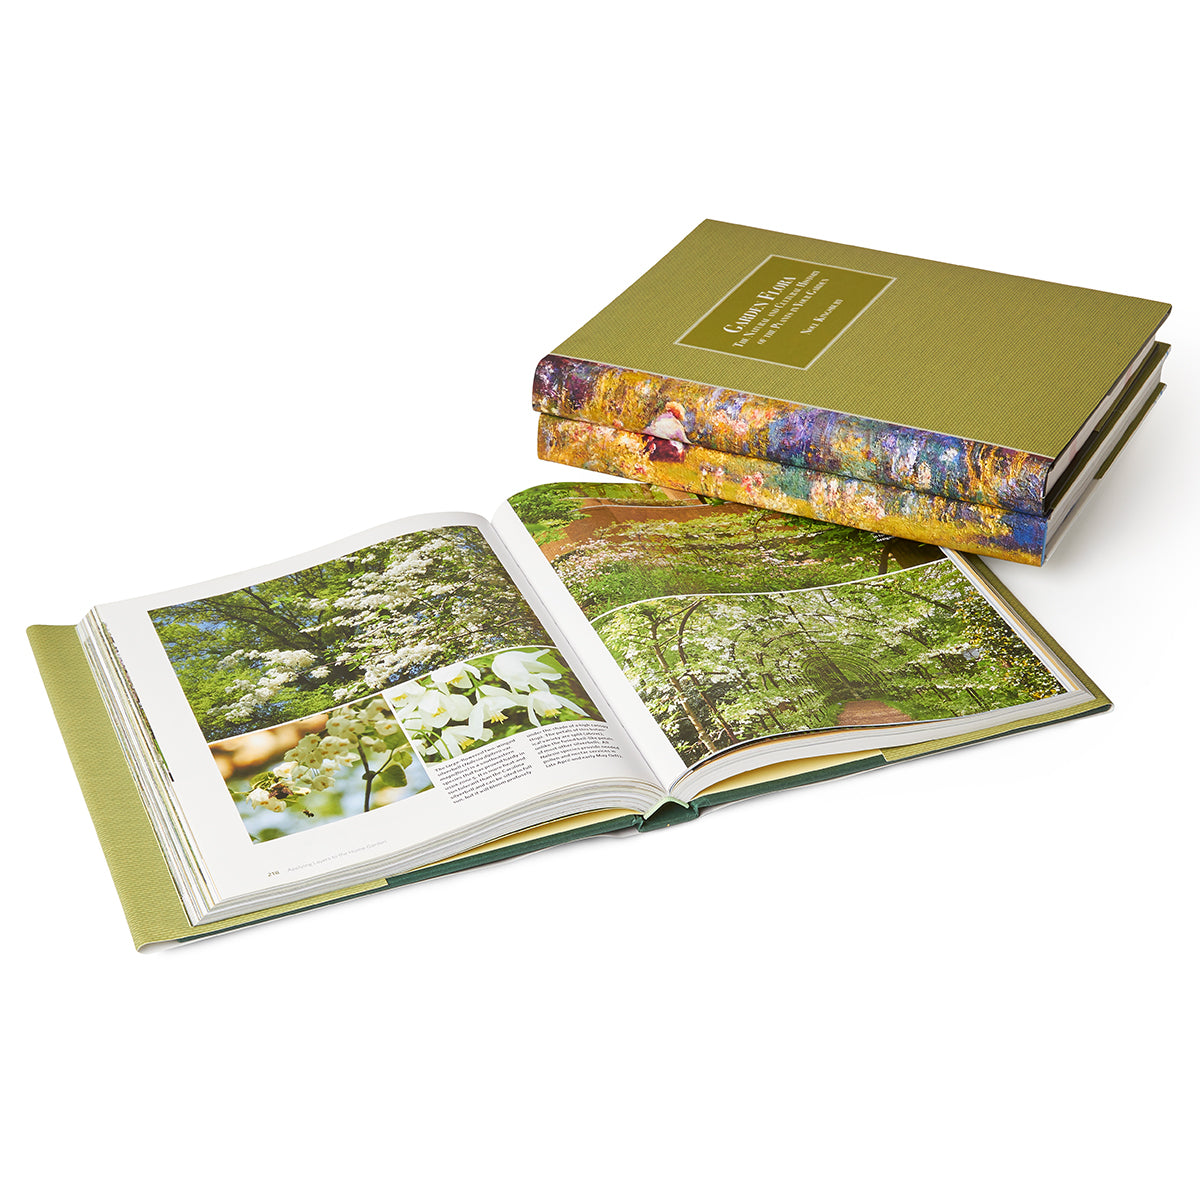 The Art of Gardening Set